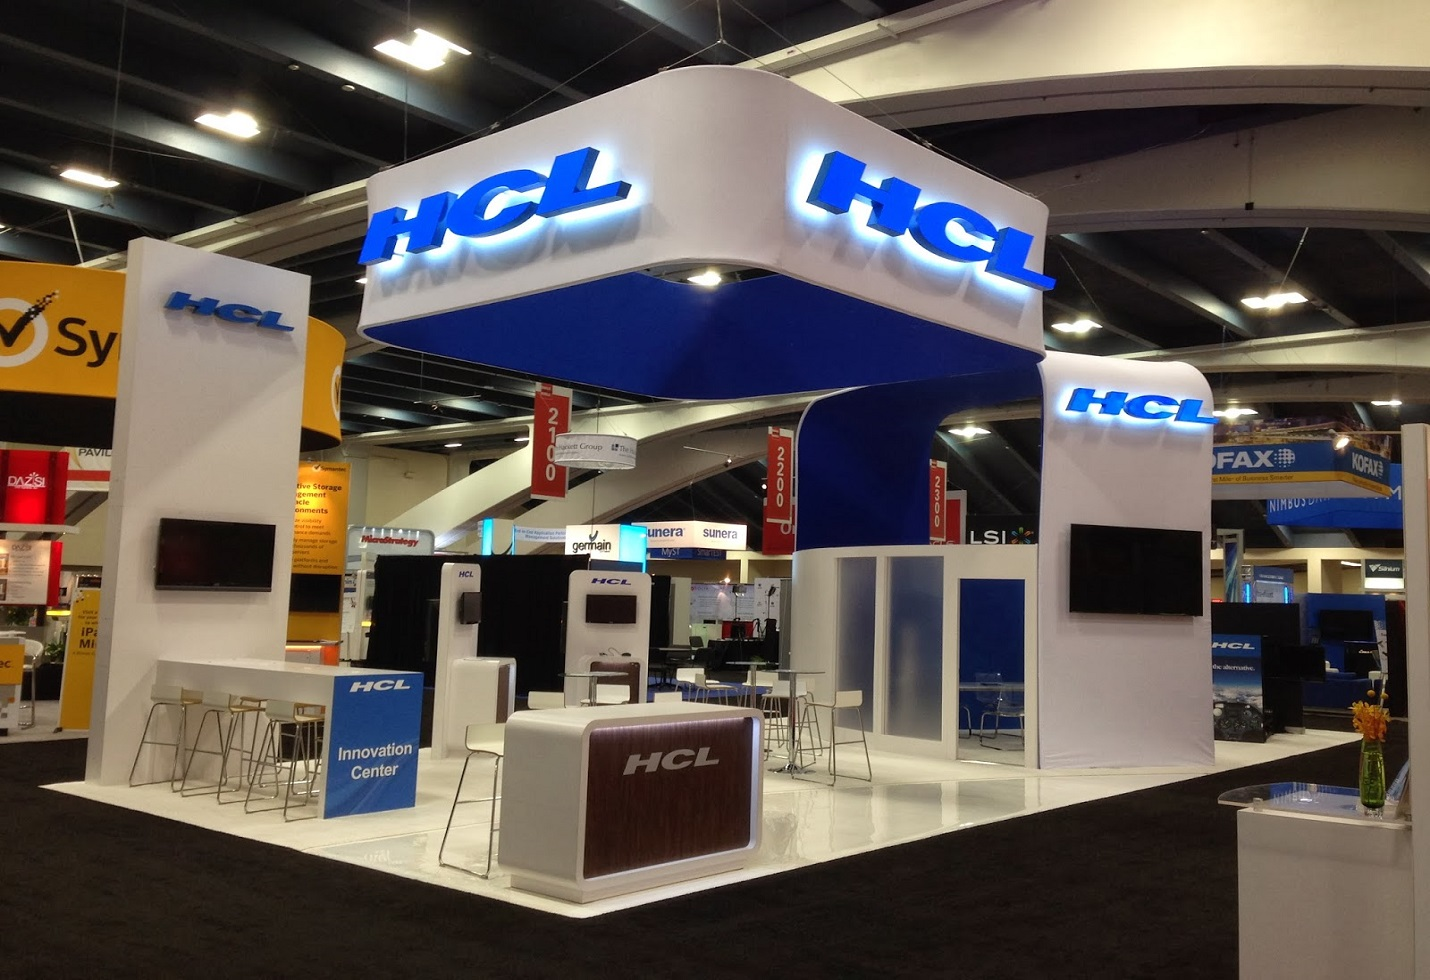 HCL to provide support to Xerox